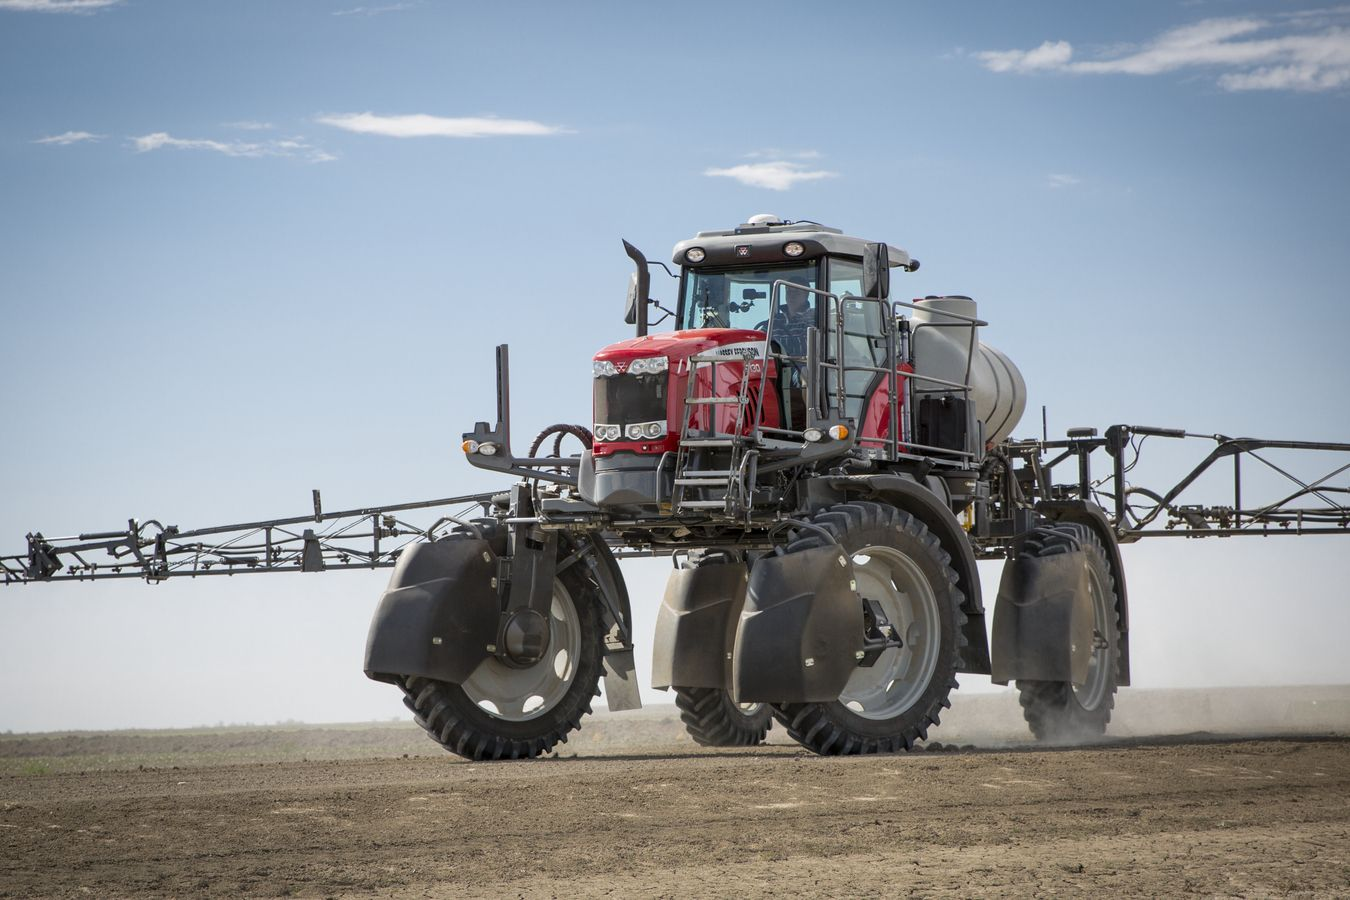 Massey Ferguson's new MF 9130 Plus self-propelled sprayer offers value and performance